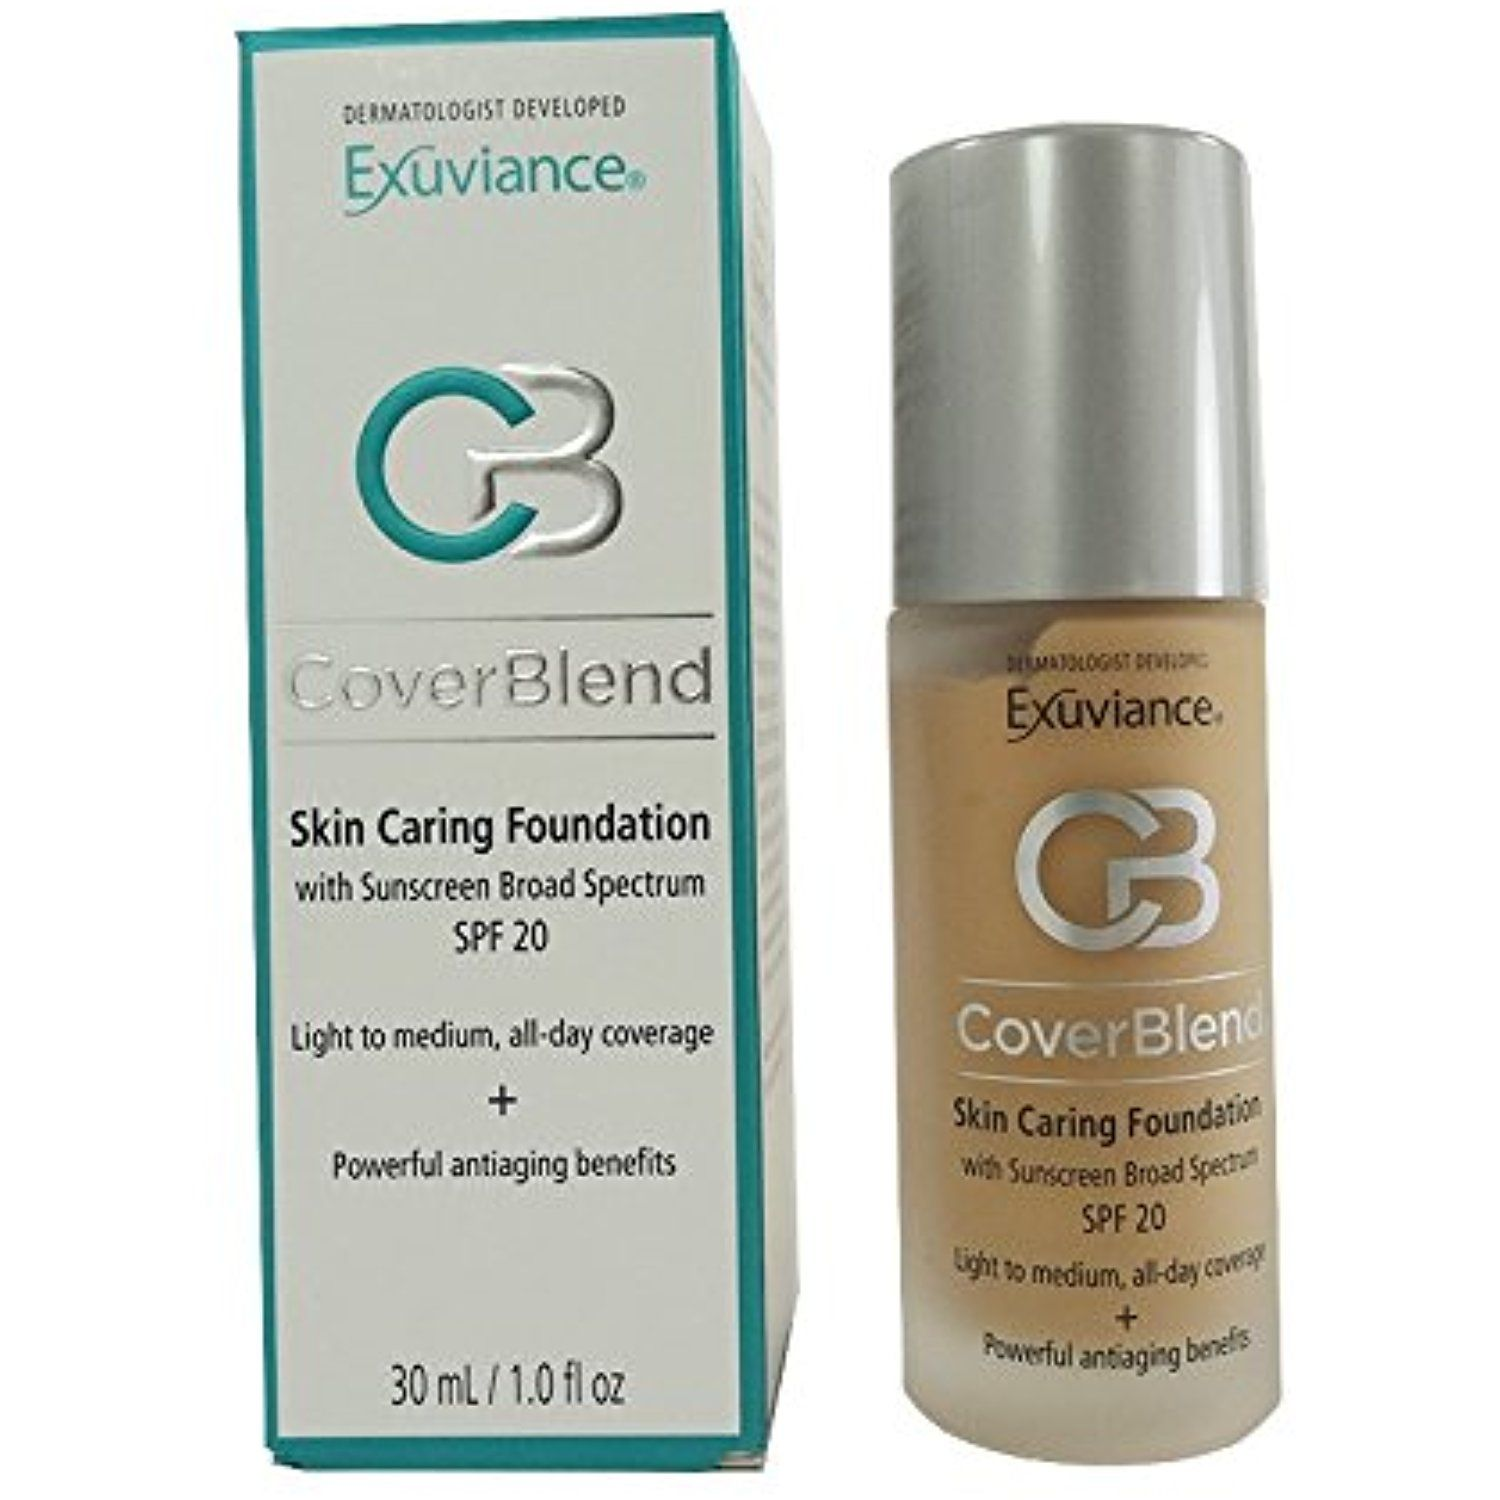 Exuviance Coverblend Skin Caring Foundations Spf 20 True Beige Read More At The Image Link This Is An Affiliate Link Exuviance No Foundation Makeup Spf